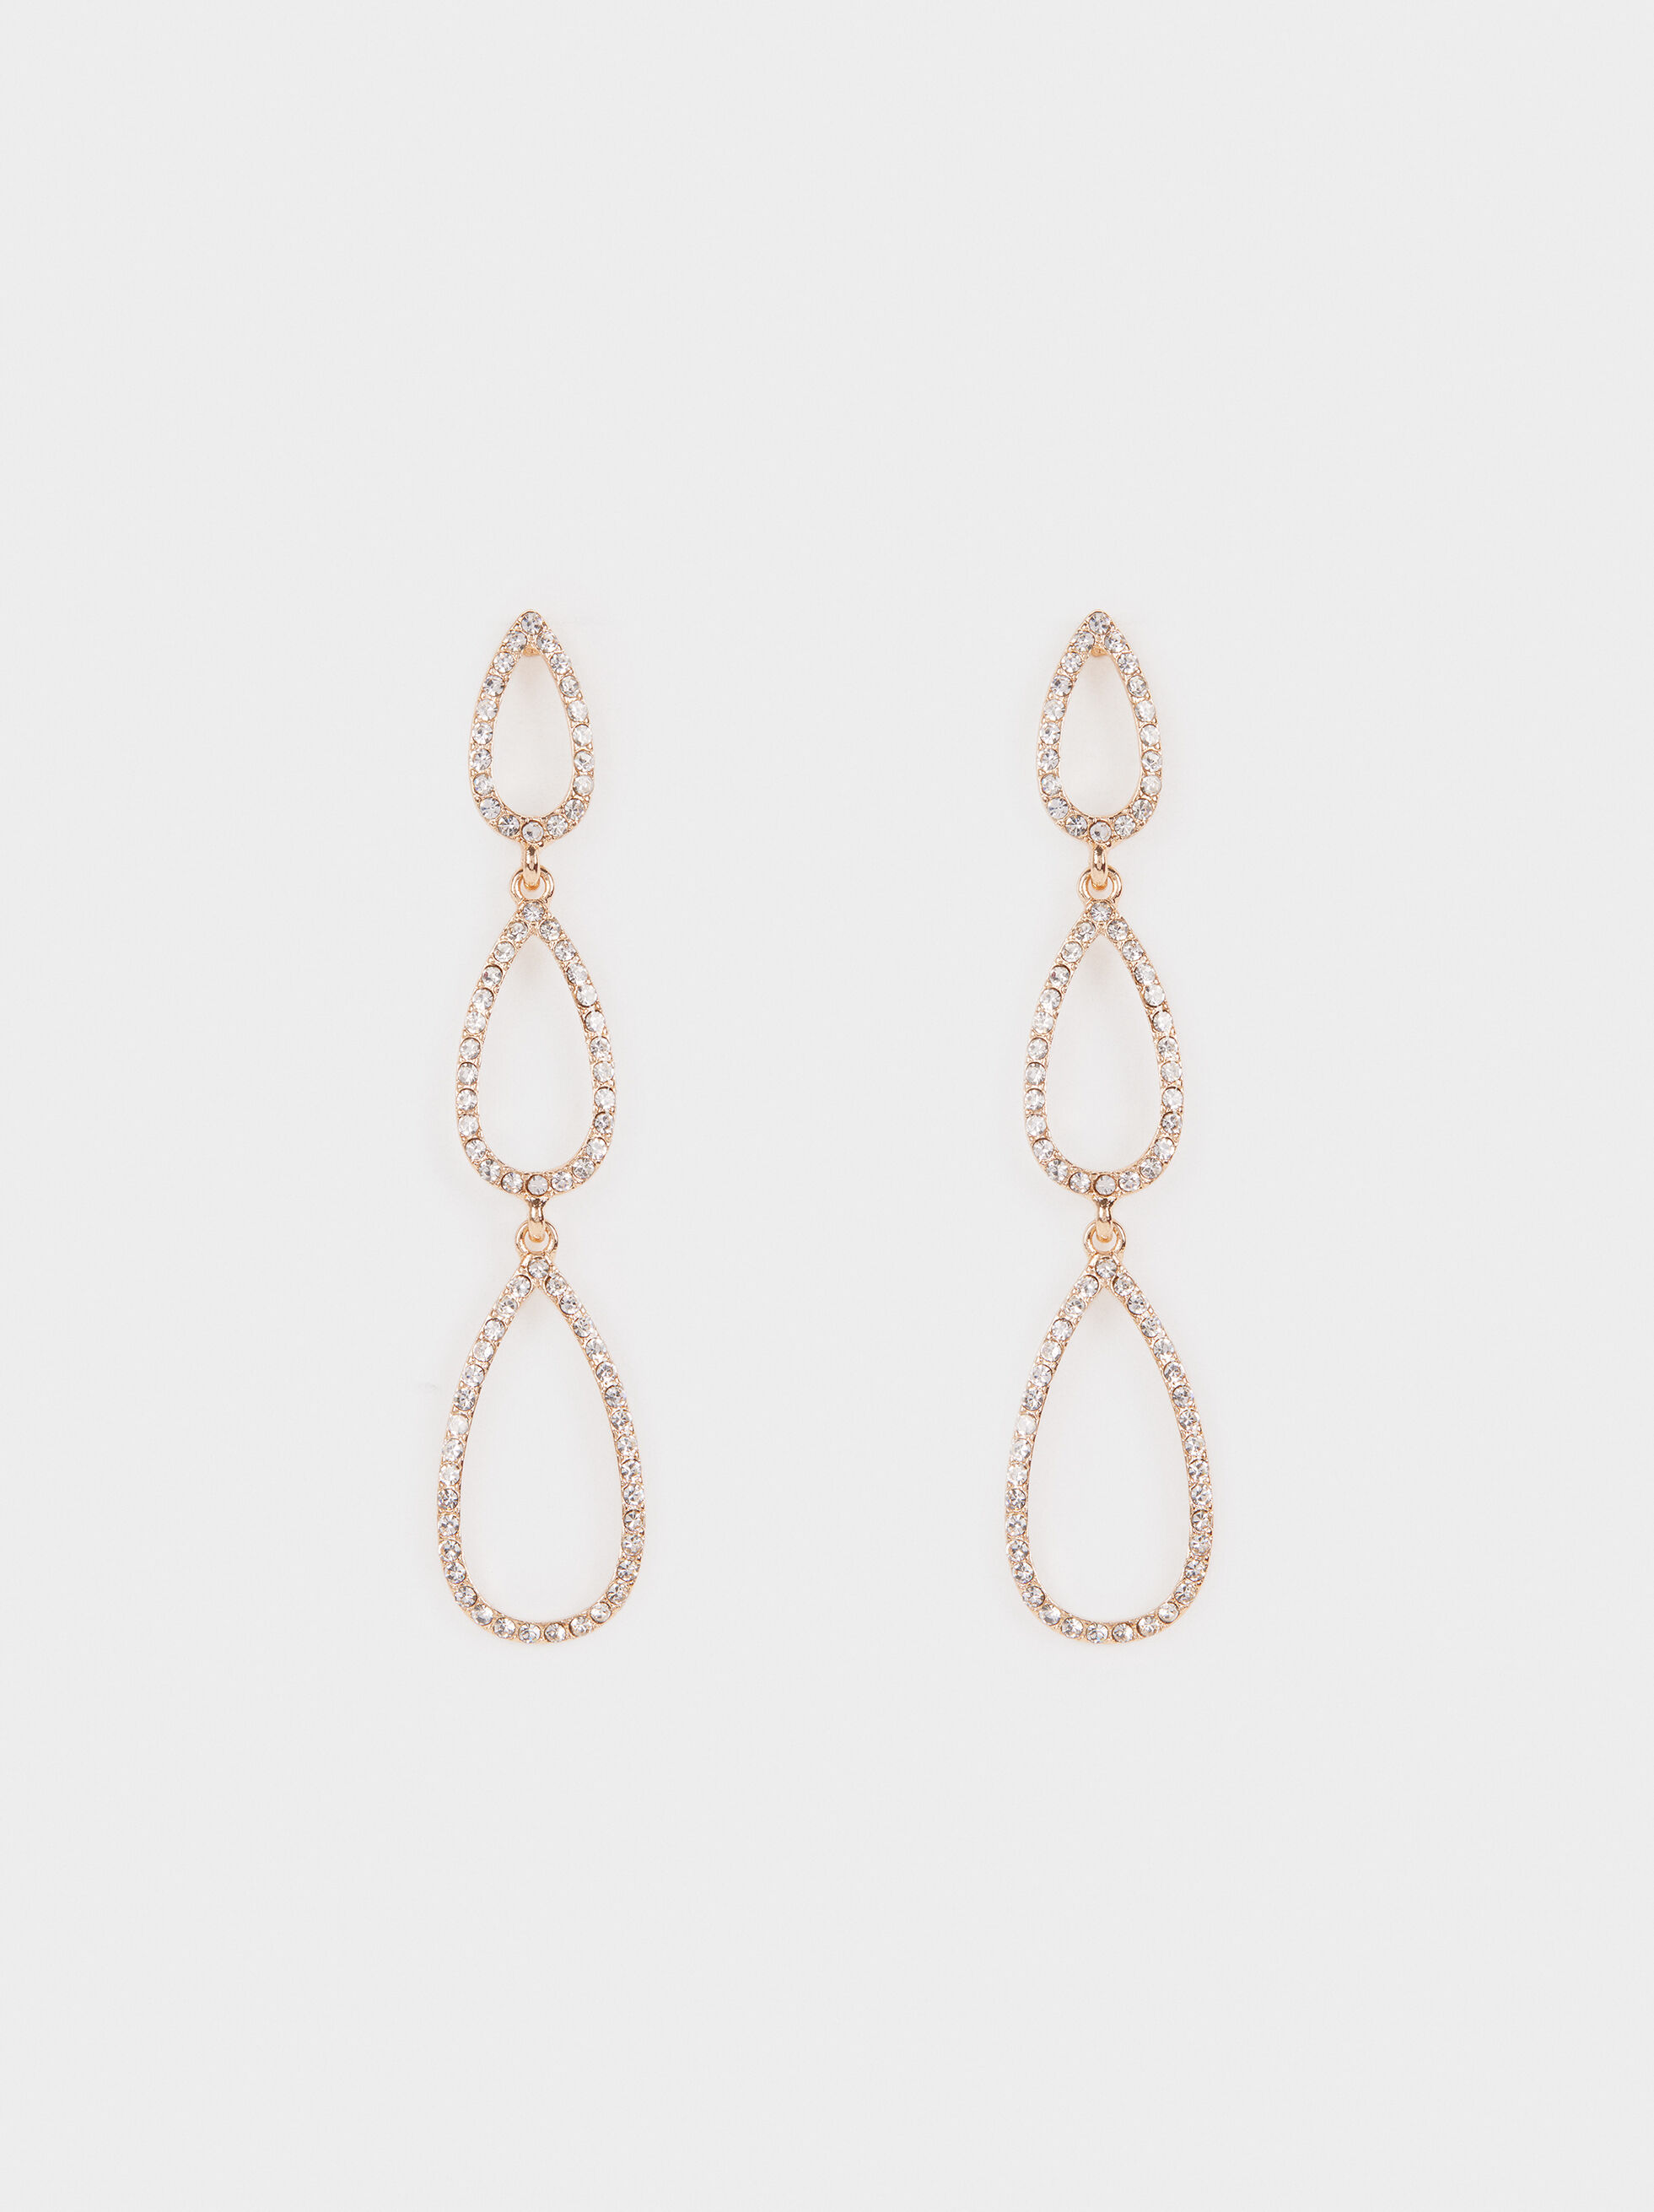 Long Earrings With Rhinestones, , hi-res